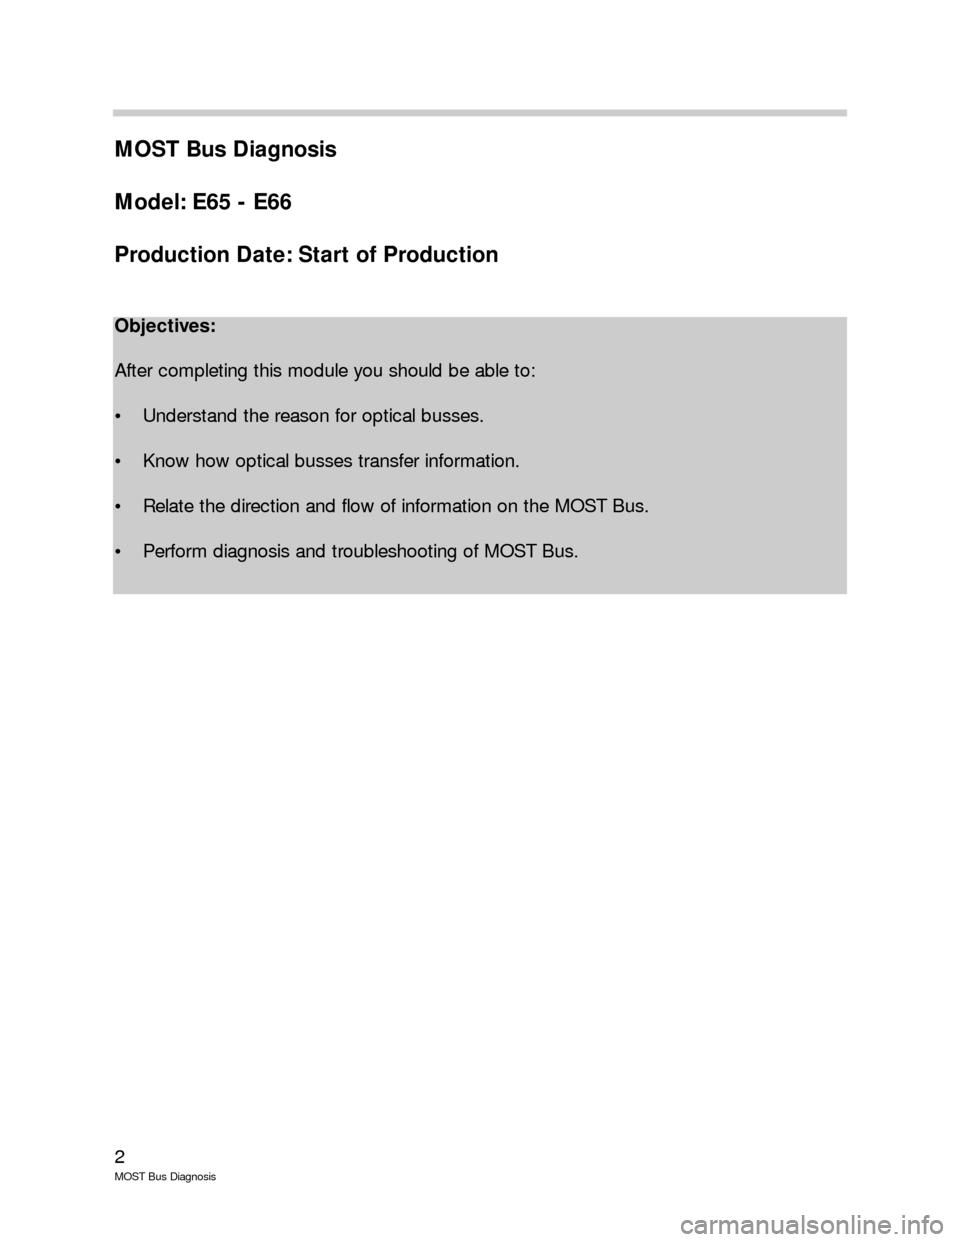 BMW 7 SERIES LONG 2005 E66 MOST Bus Diagnosis Workshop Manual, Page 2